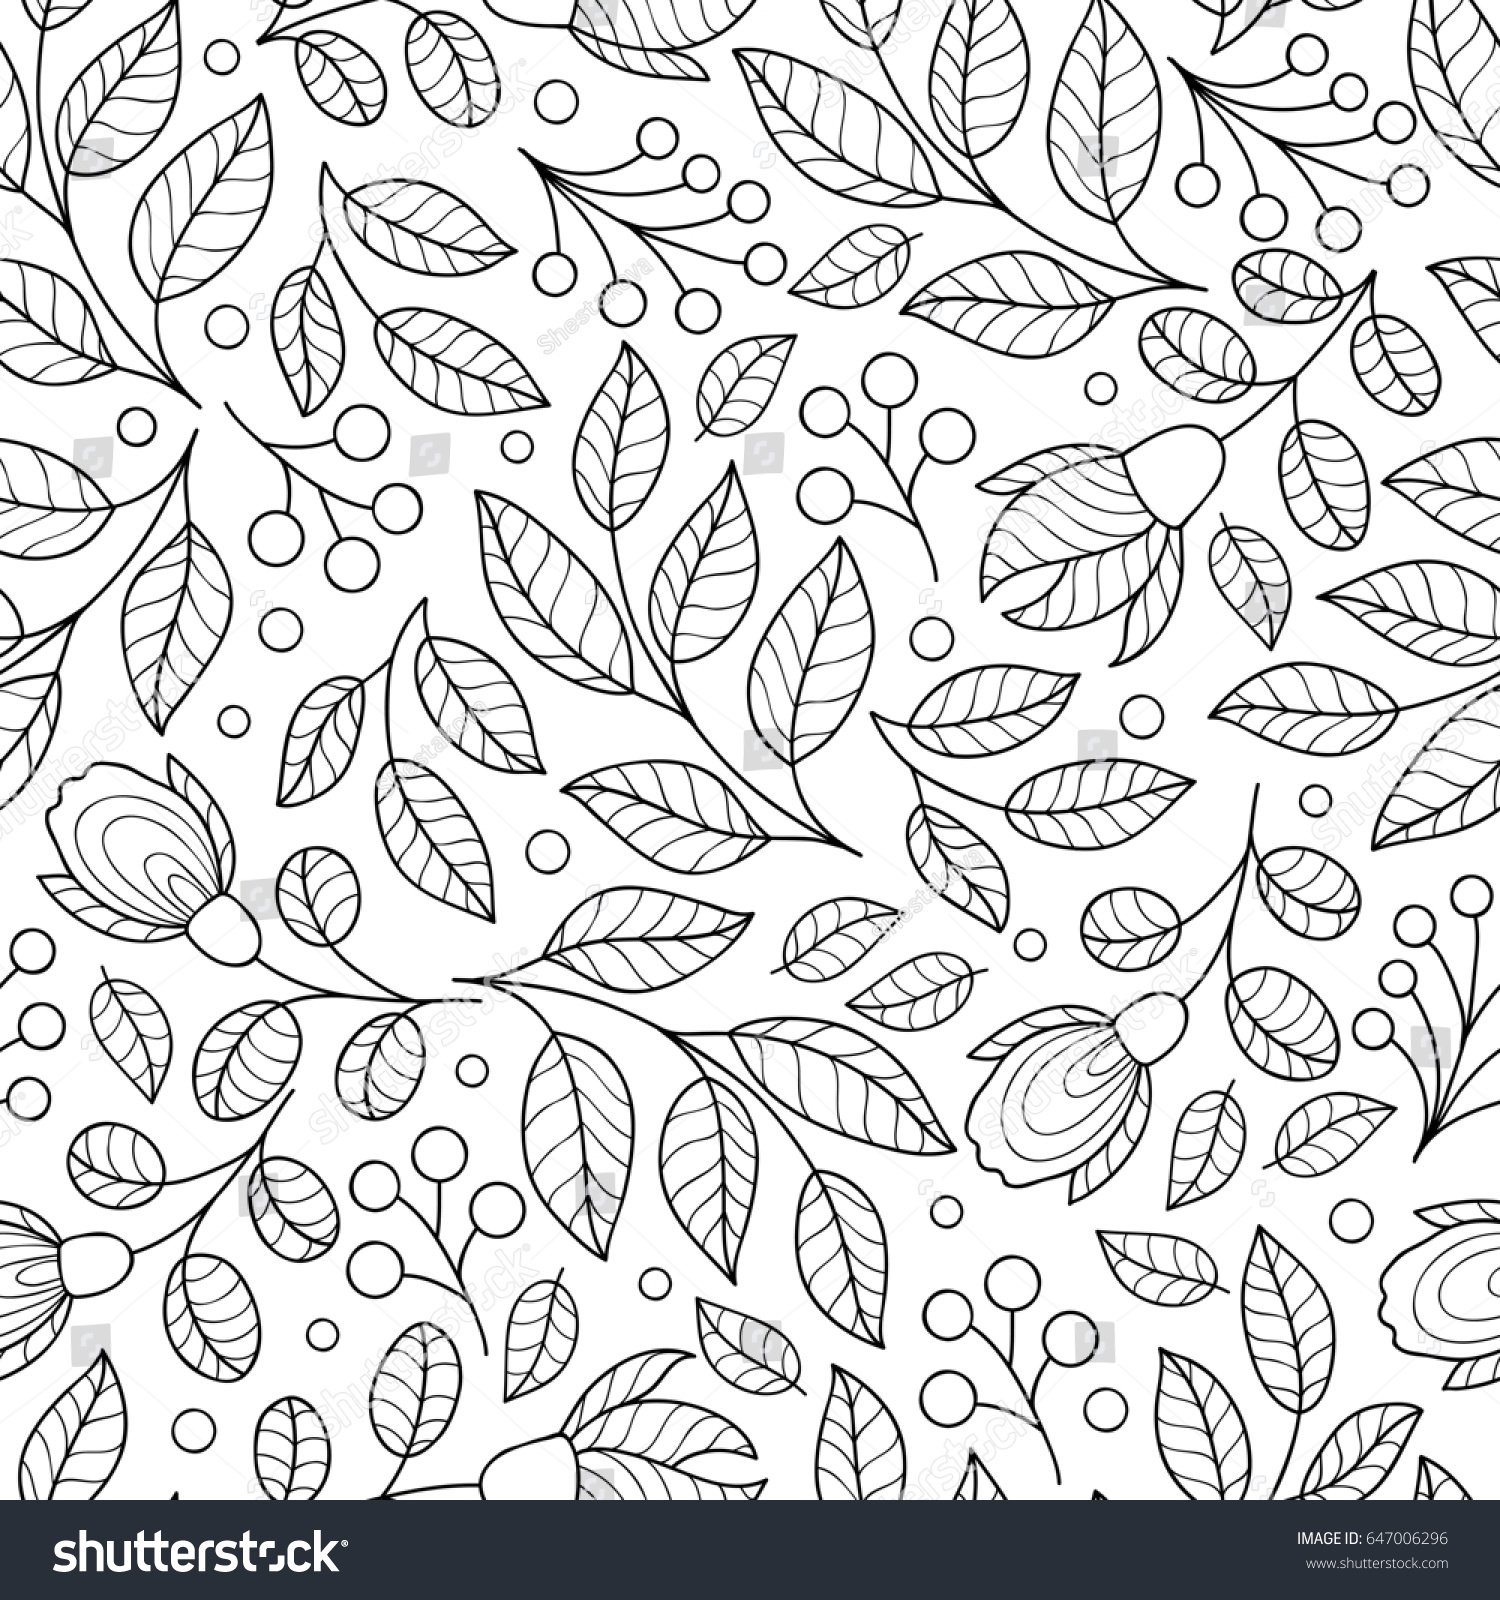 Cute Flower Seamless Pattern Black And White Print With Flowers